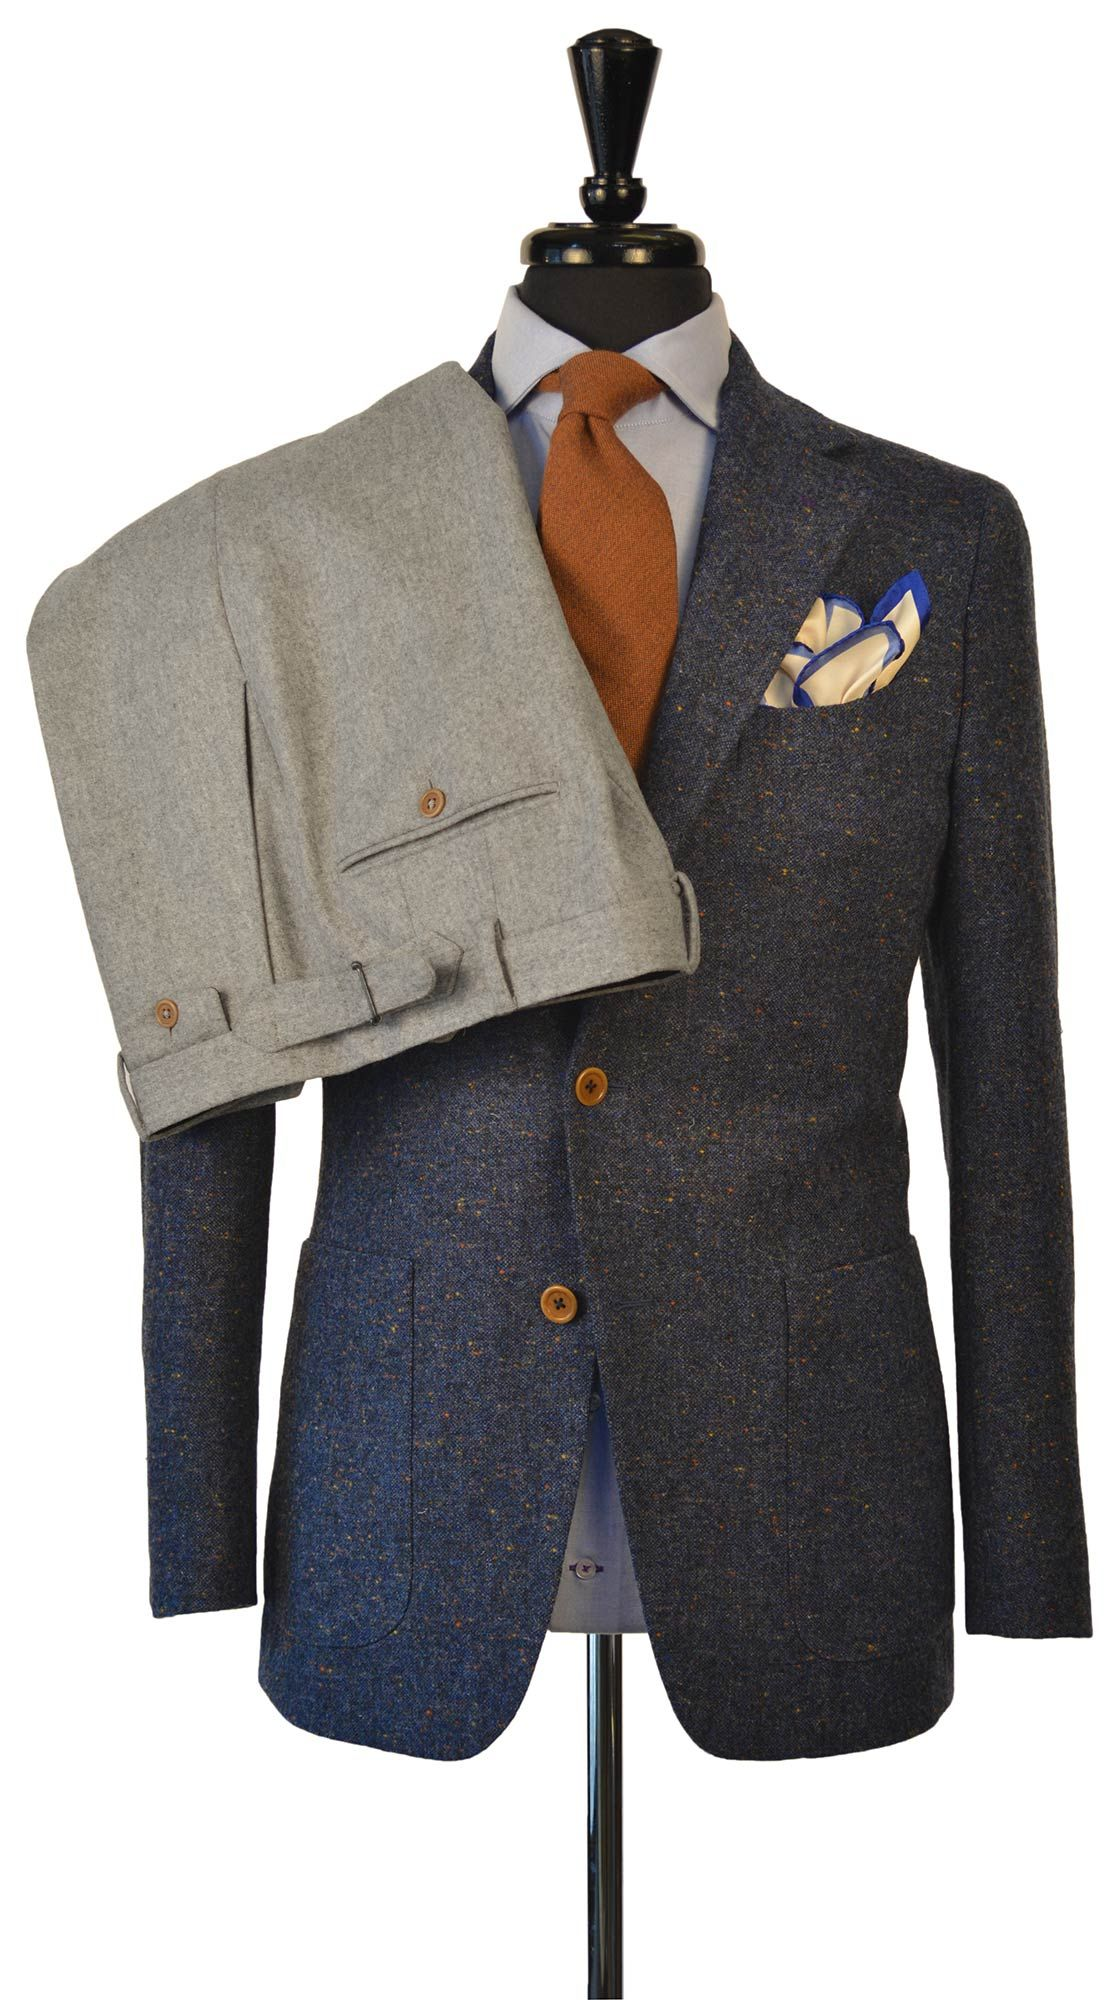 Grey flannel jacket  Beckett u Robb TwoPiece Separates Donegal tweed jacket with odd